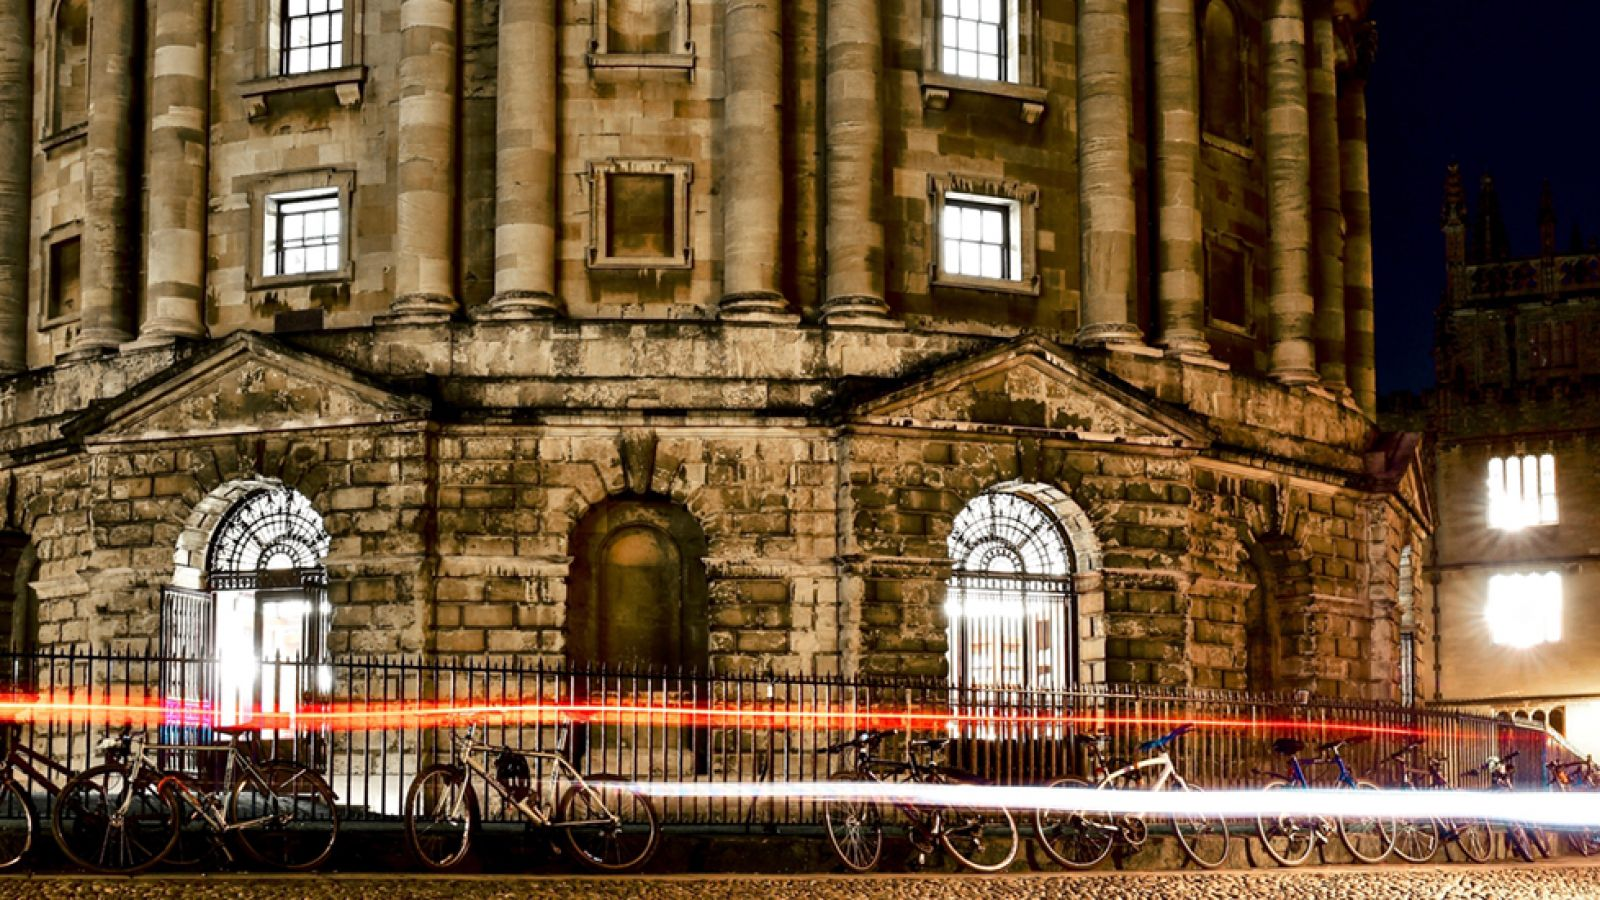 Night time view of the Radcliffe Camera